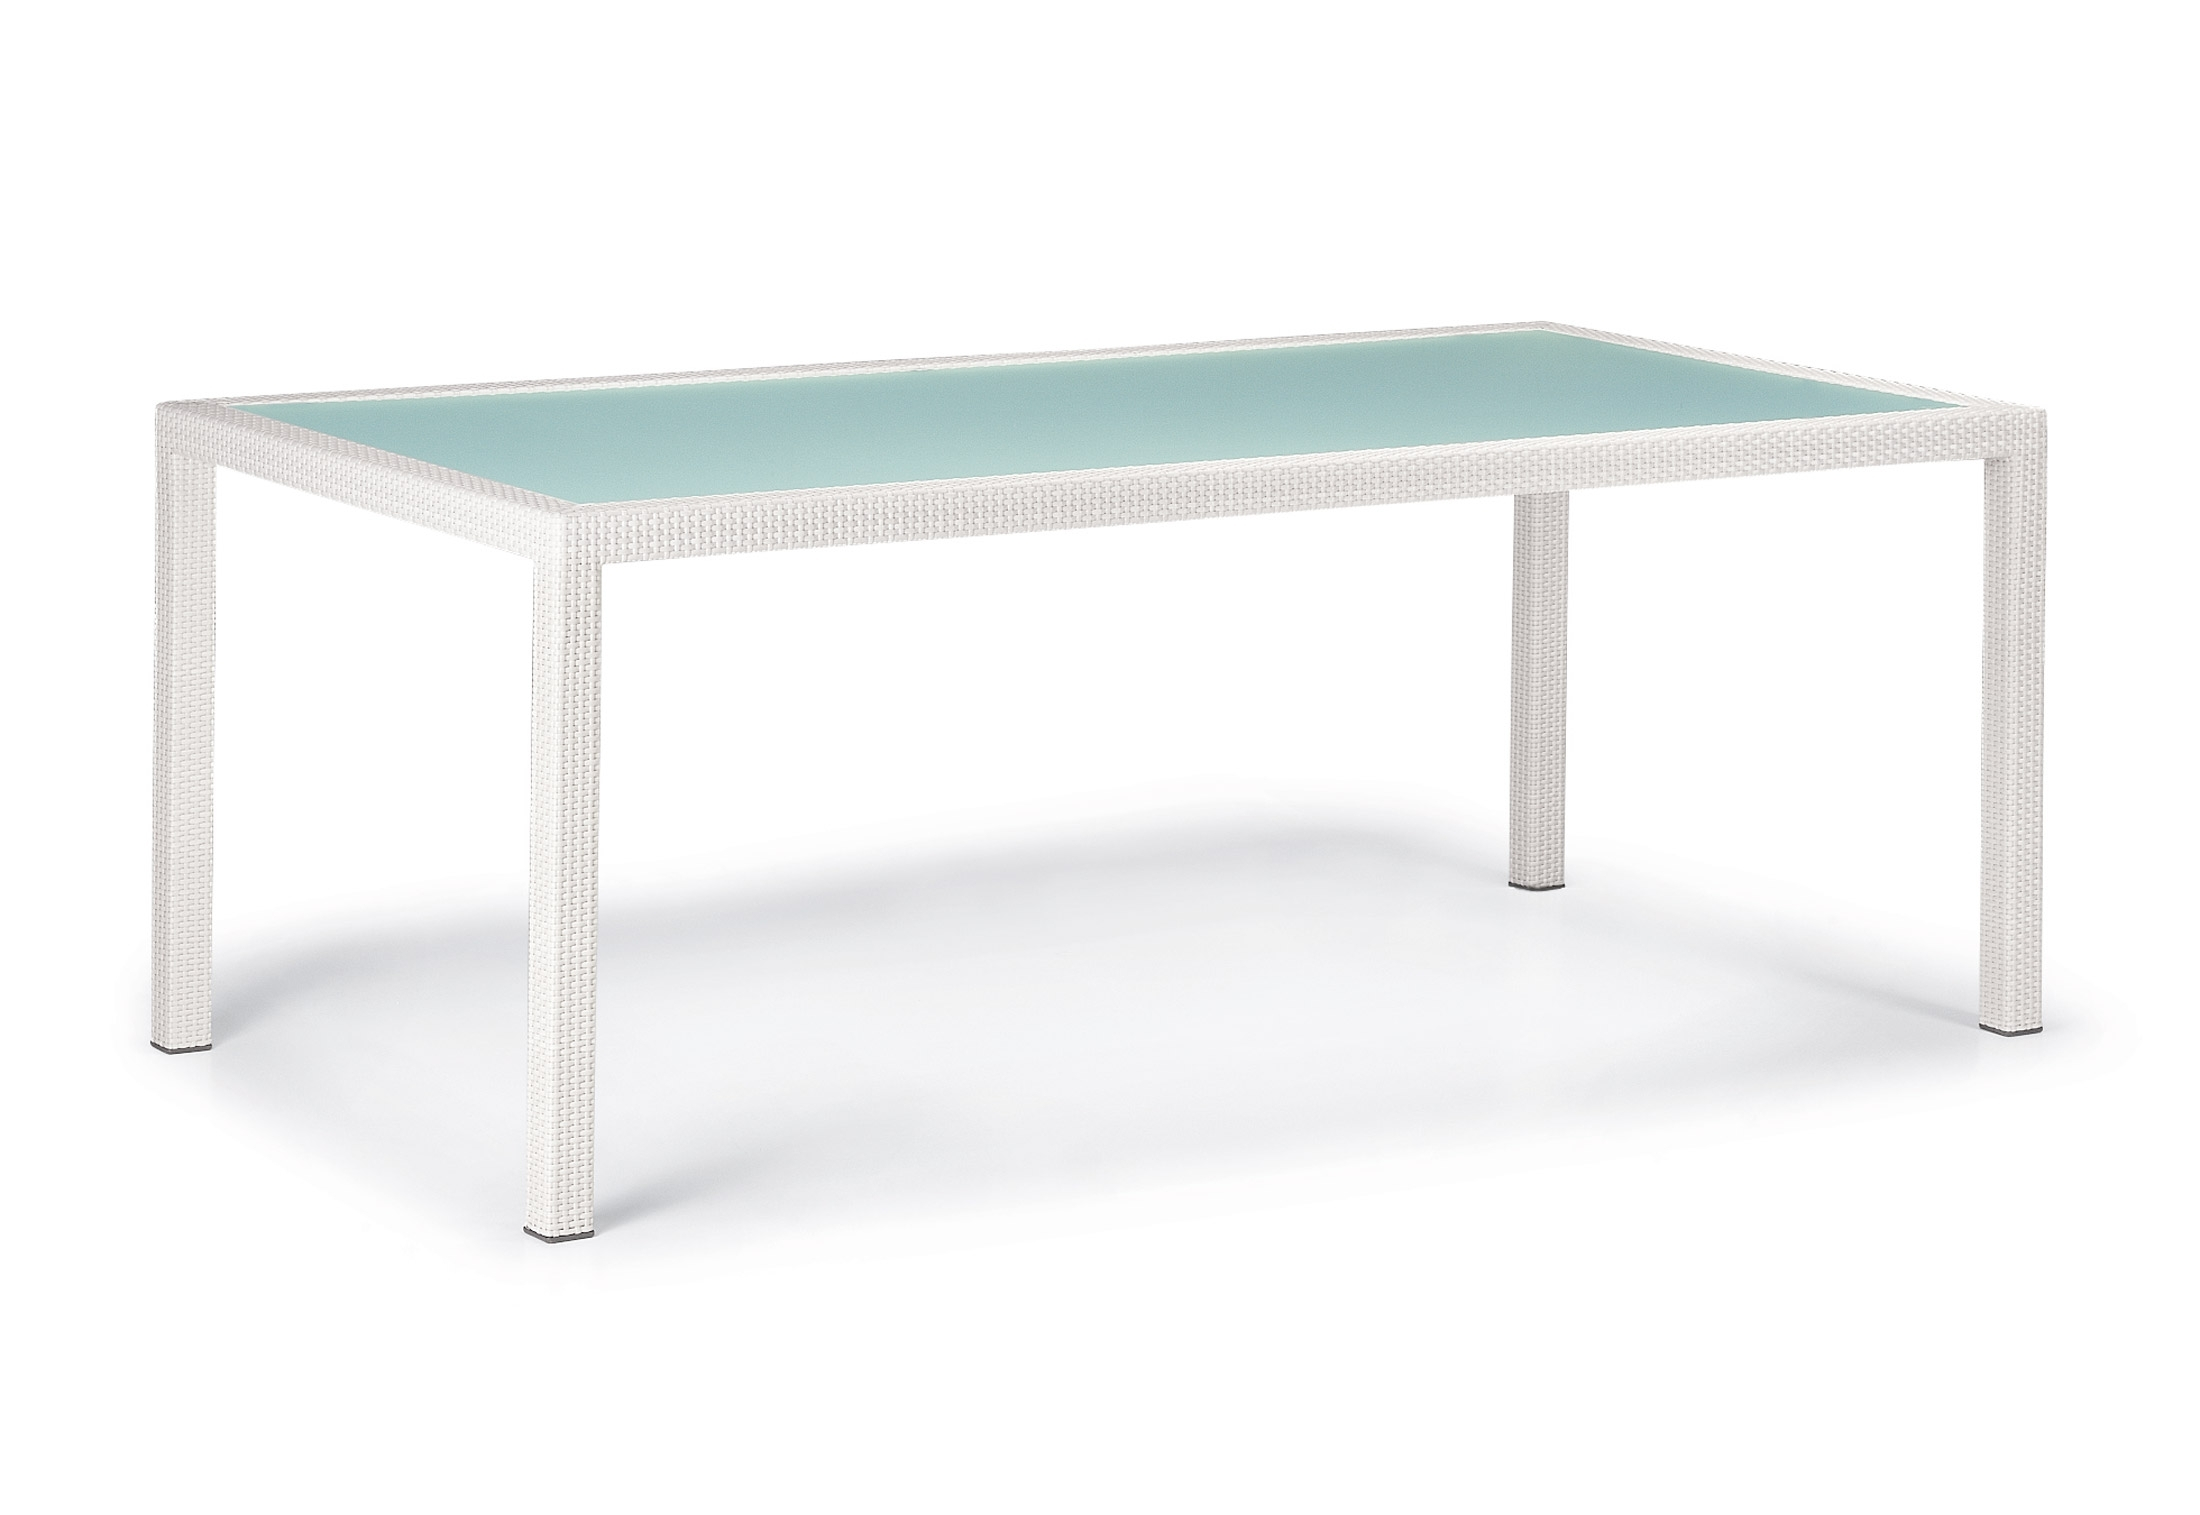 Barcelona Dining Tables For Widely Used Barcelona Dining Table 100X200Dedon (View 14 of 25)